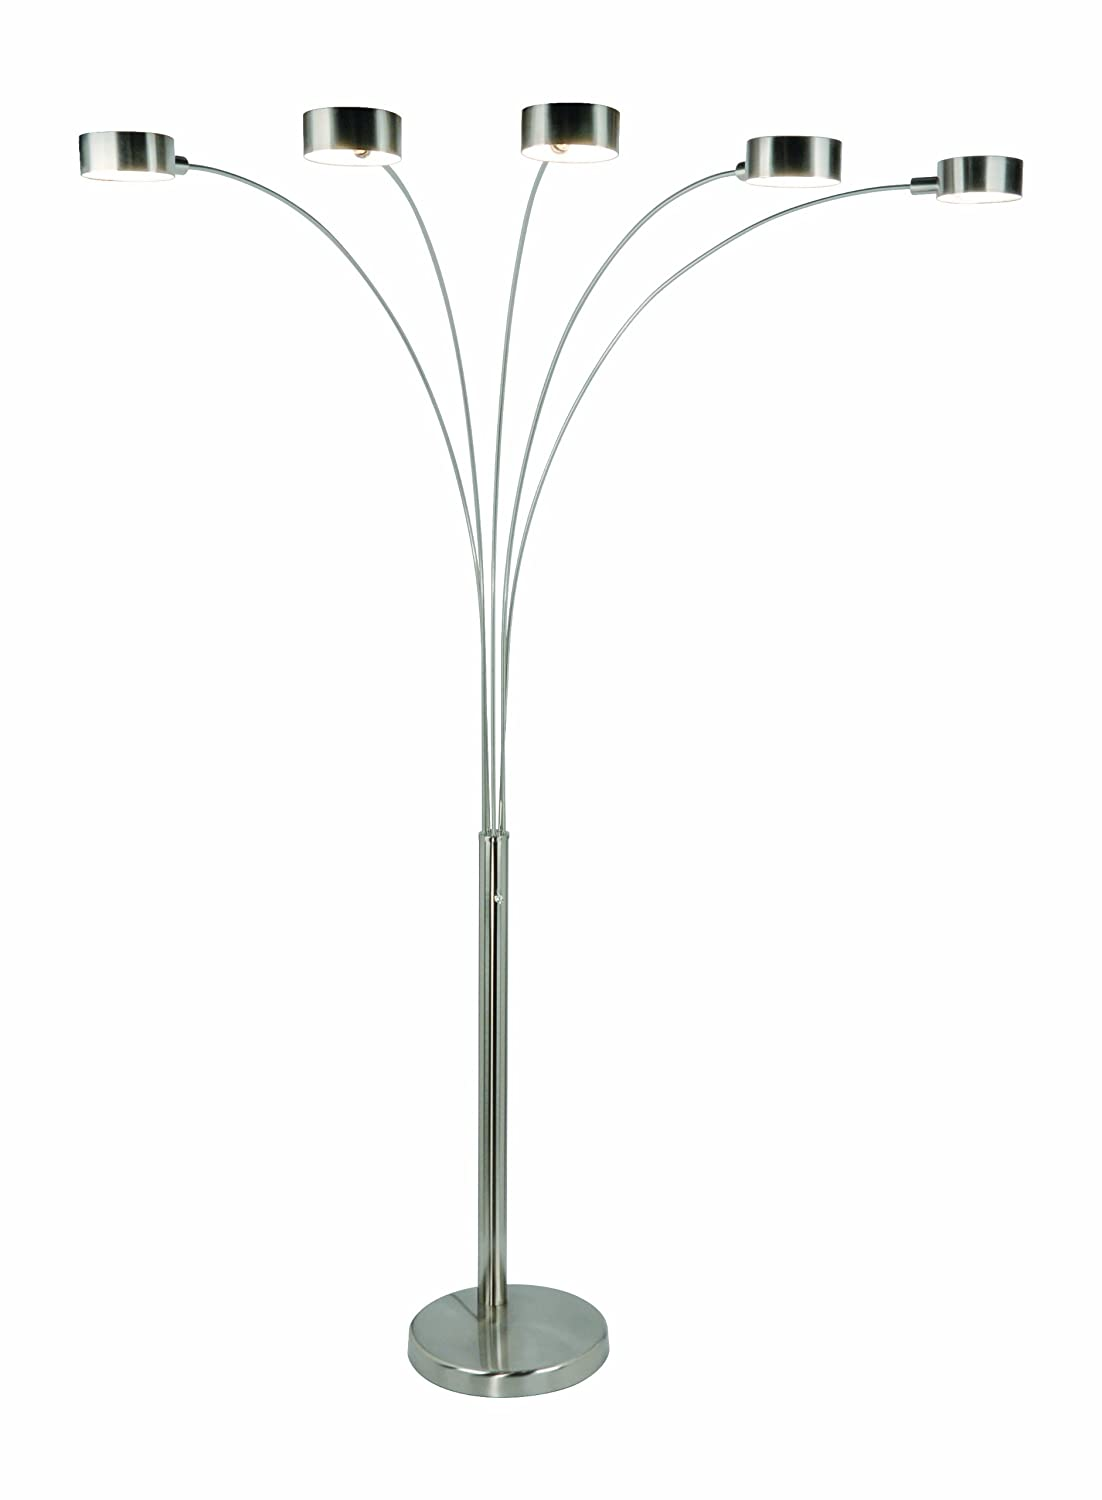 Amazon.com: Artiva USA Micah - 5 Arc Brushed Steel Floor Lamp w ...